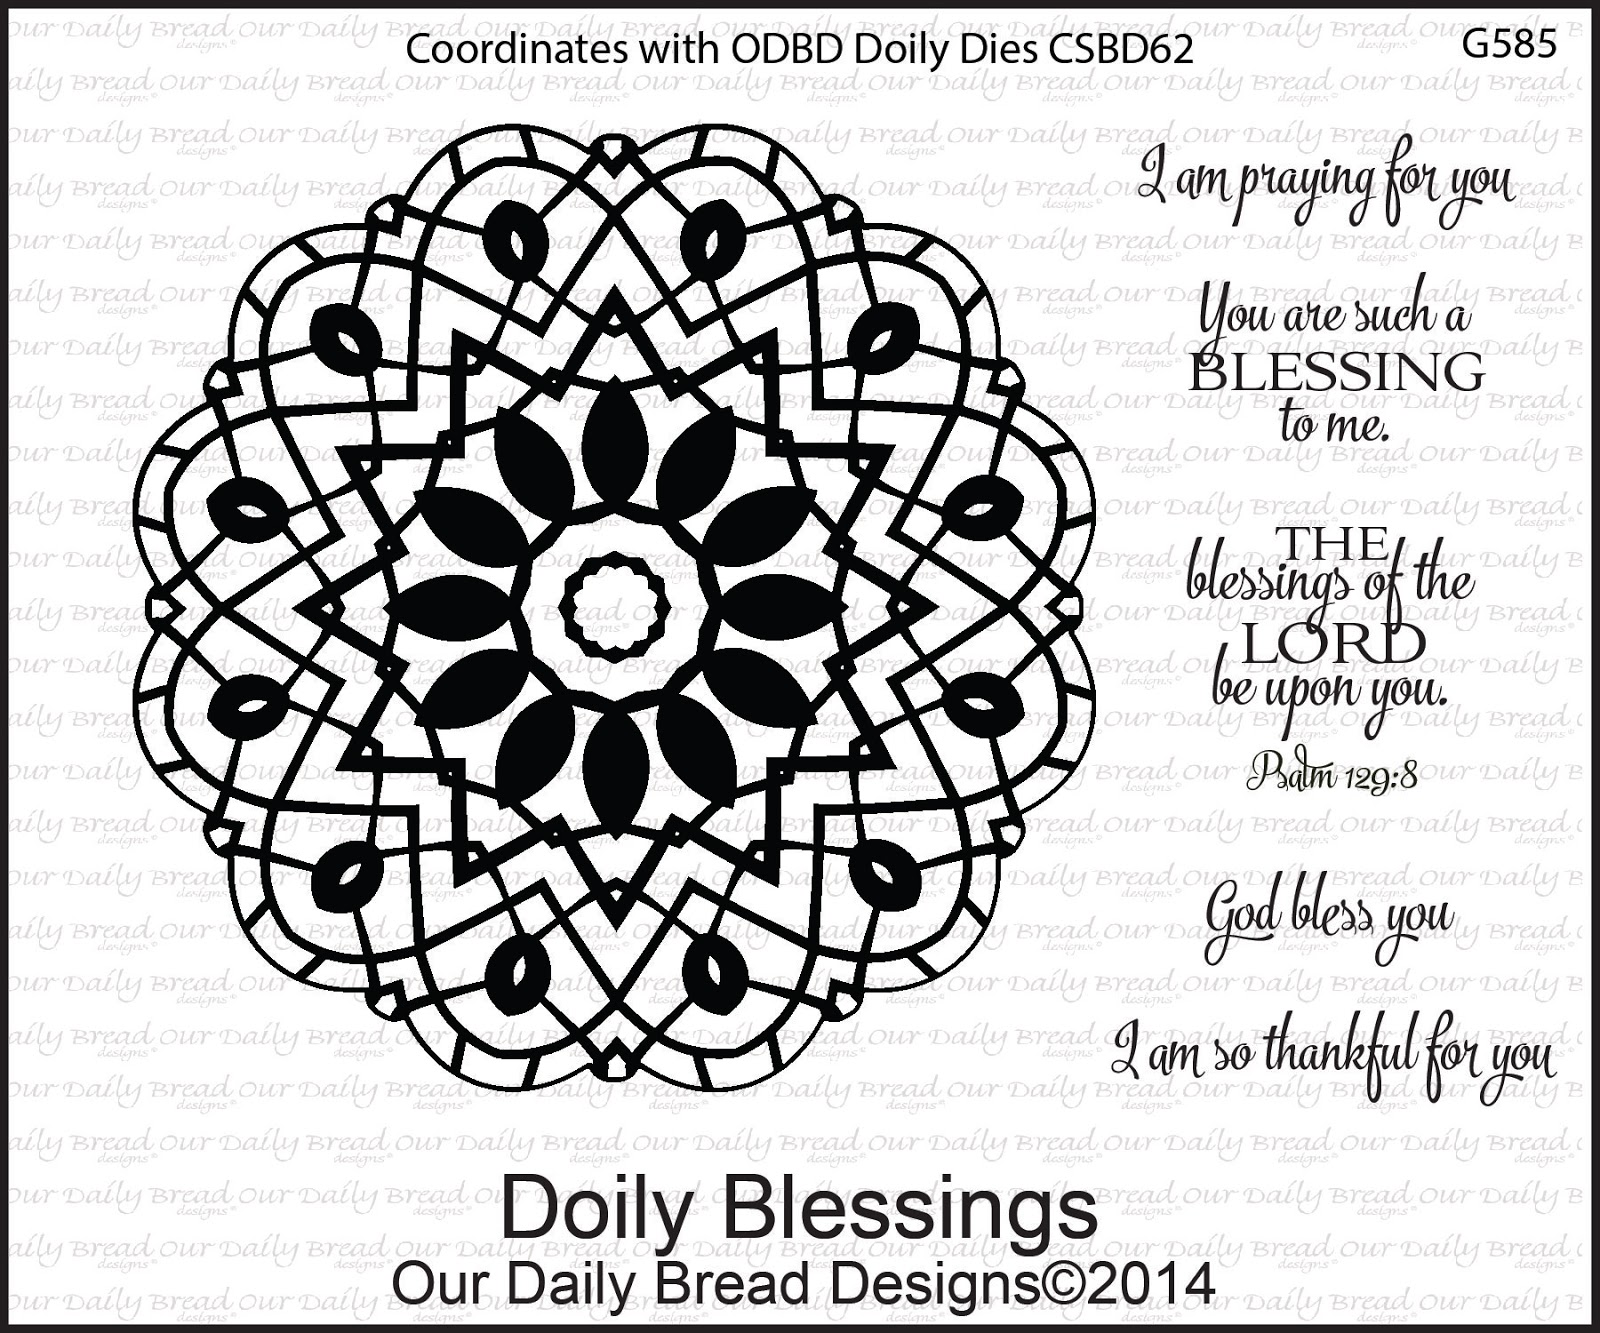 https://www.ourdailybreaddesigns.com/index.php/g585-doily-blessings.html